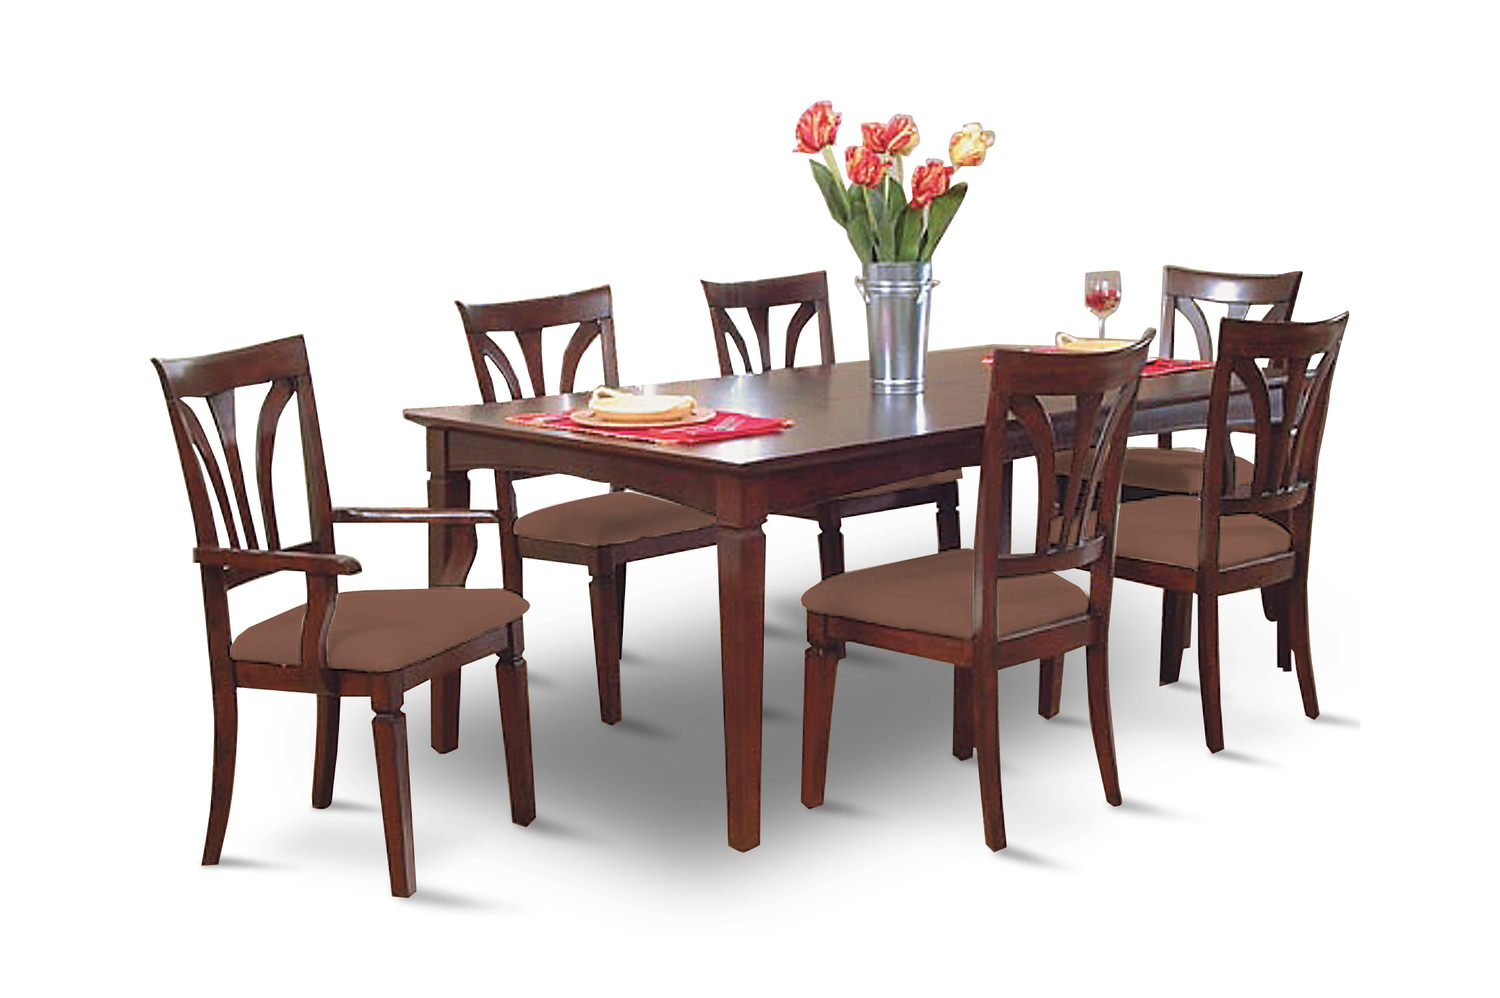 Madison Avenue Dining Table With 4 Side Chairs And 2 Arm Chairs. Part 72